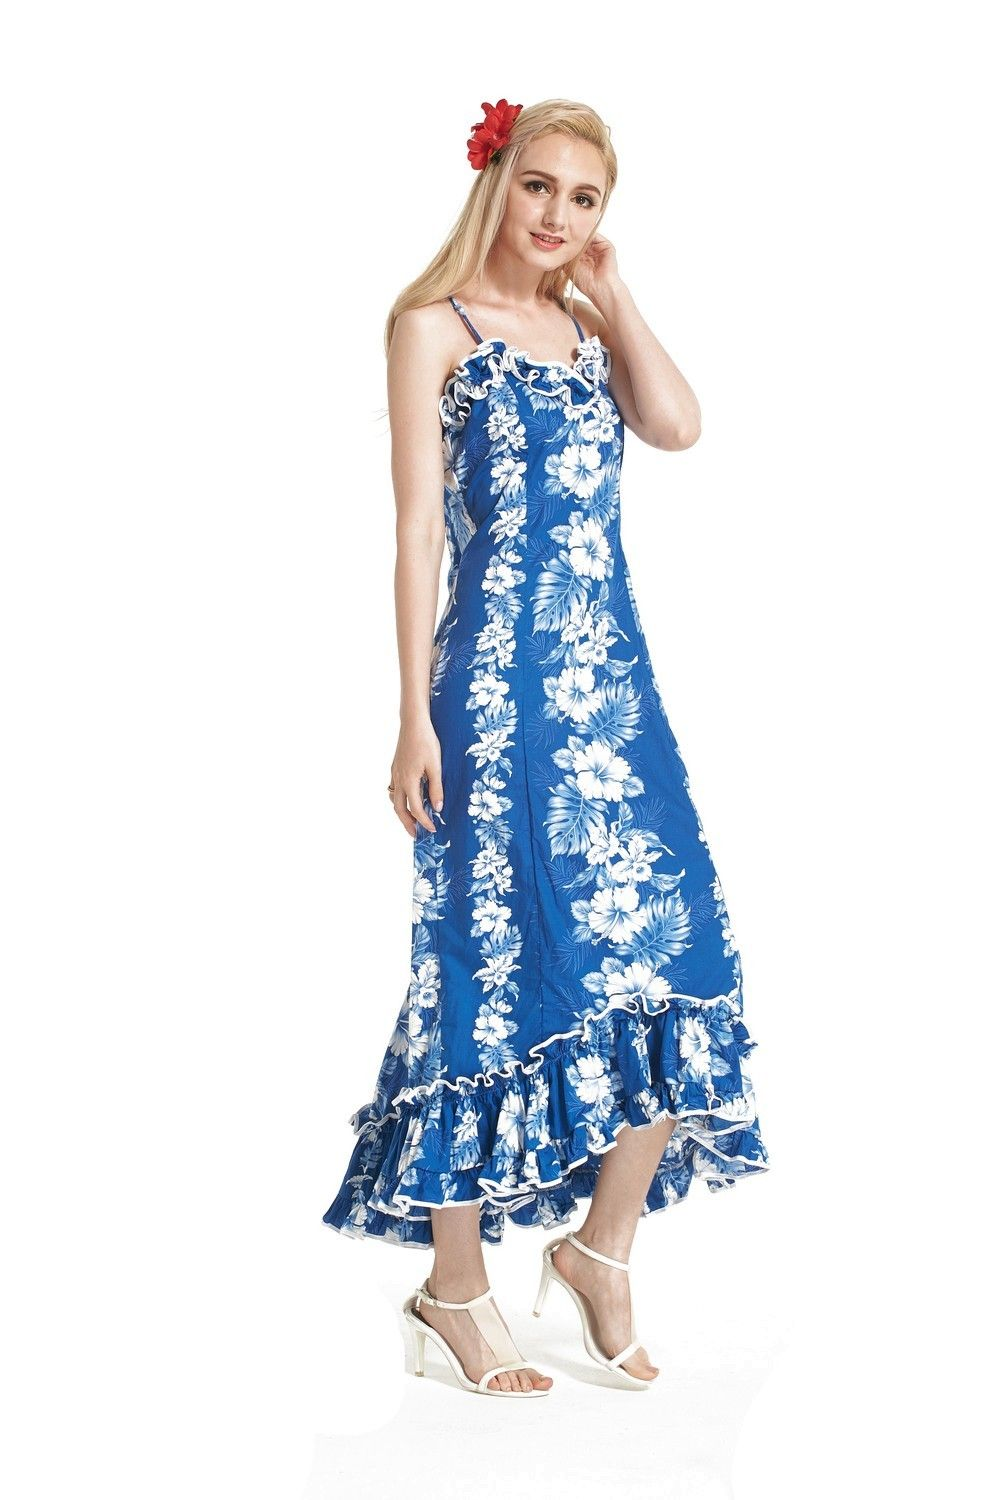 Old Fashioned Luau Party Dress Ideas Gift - All Wedding Dresses ...